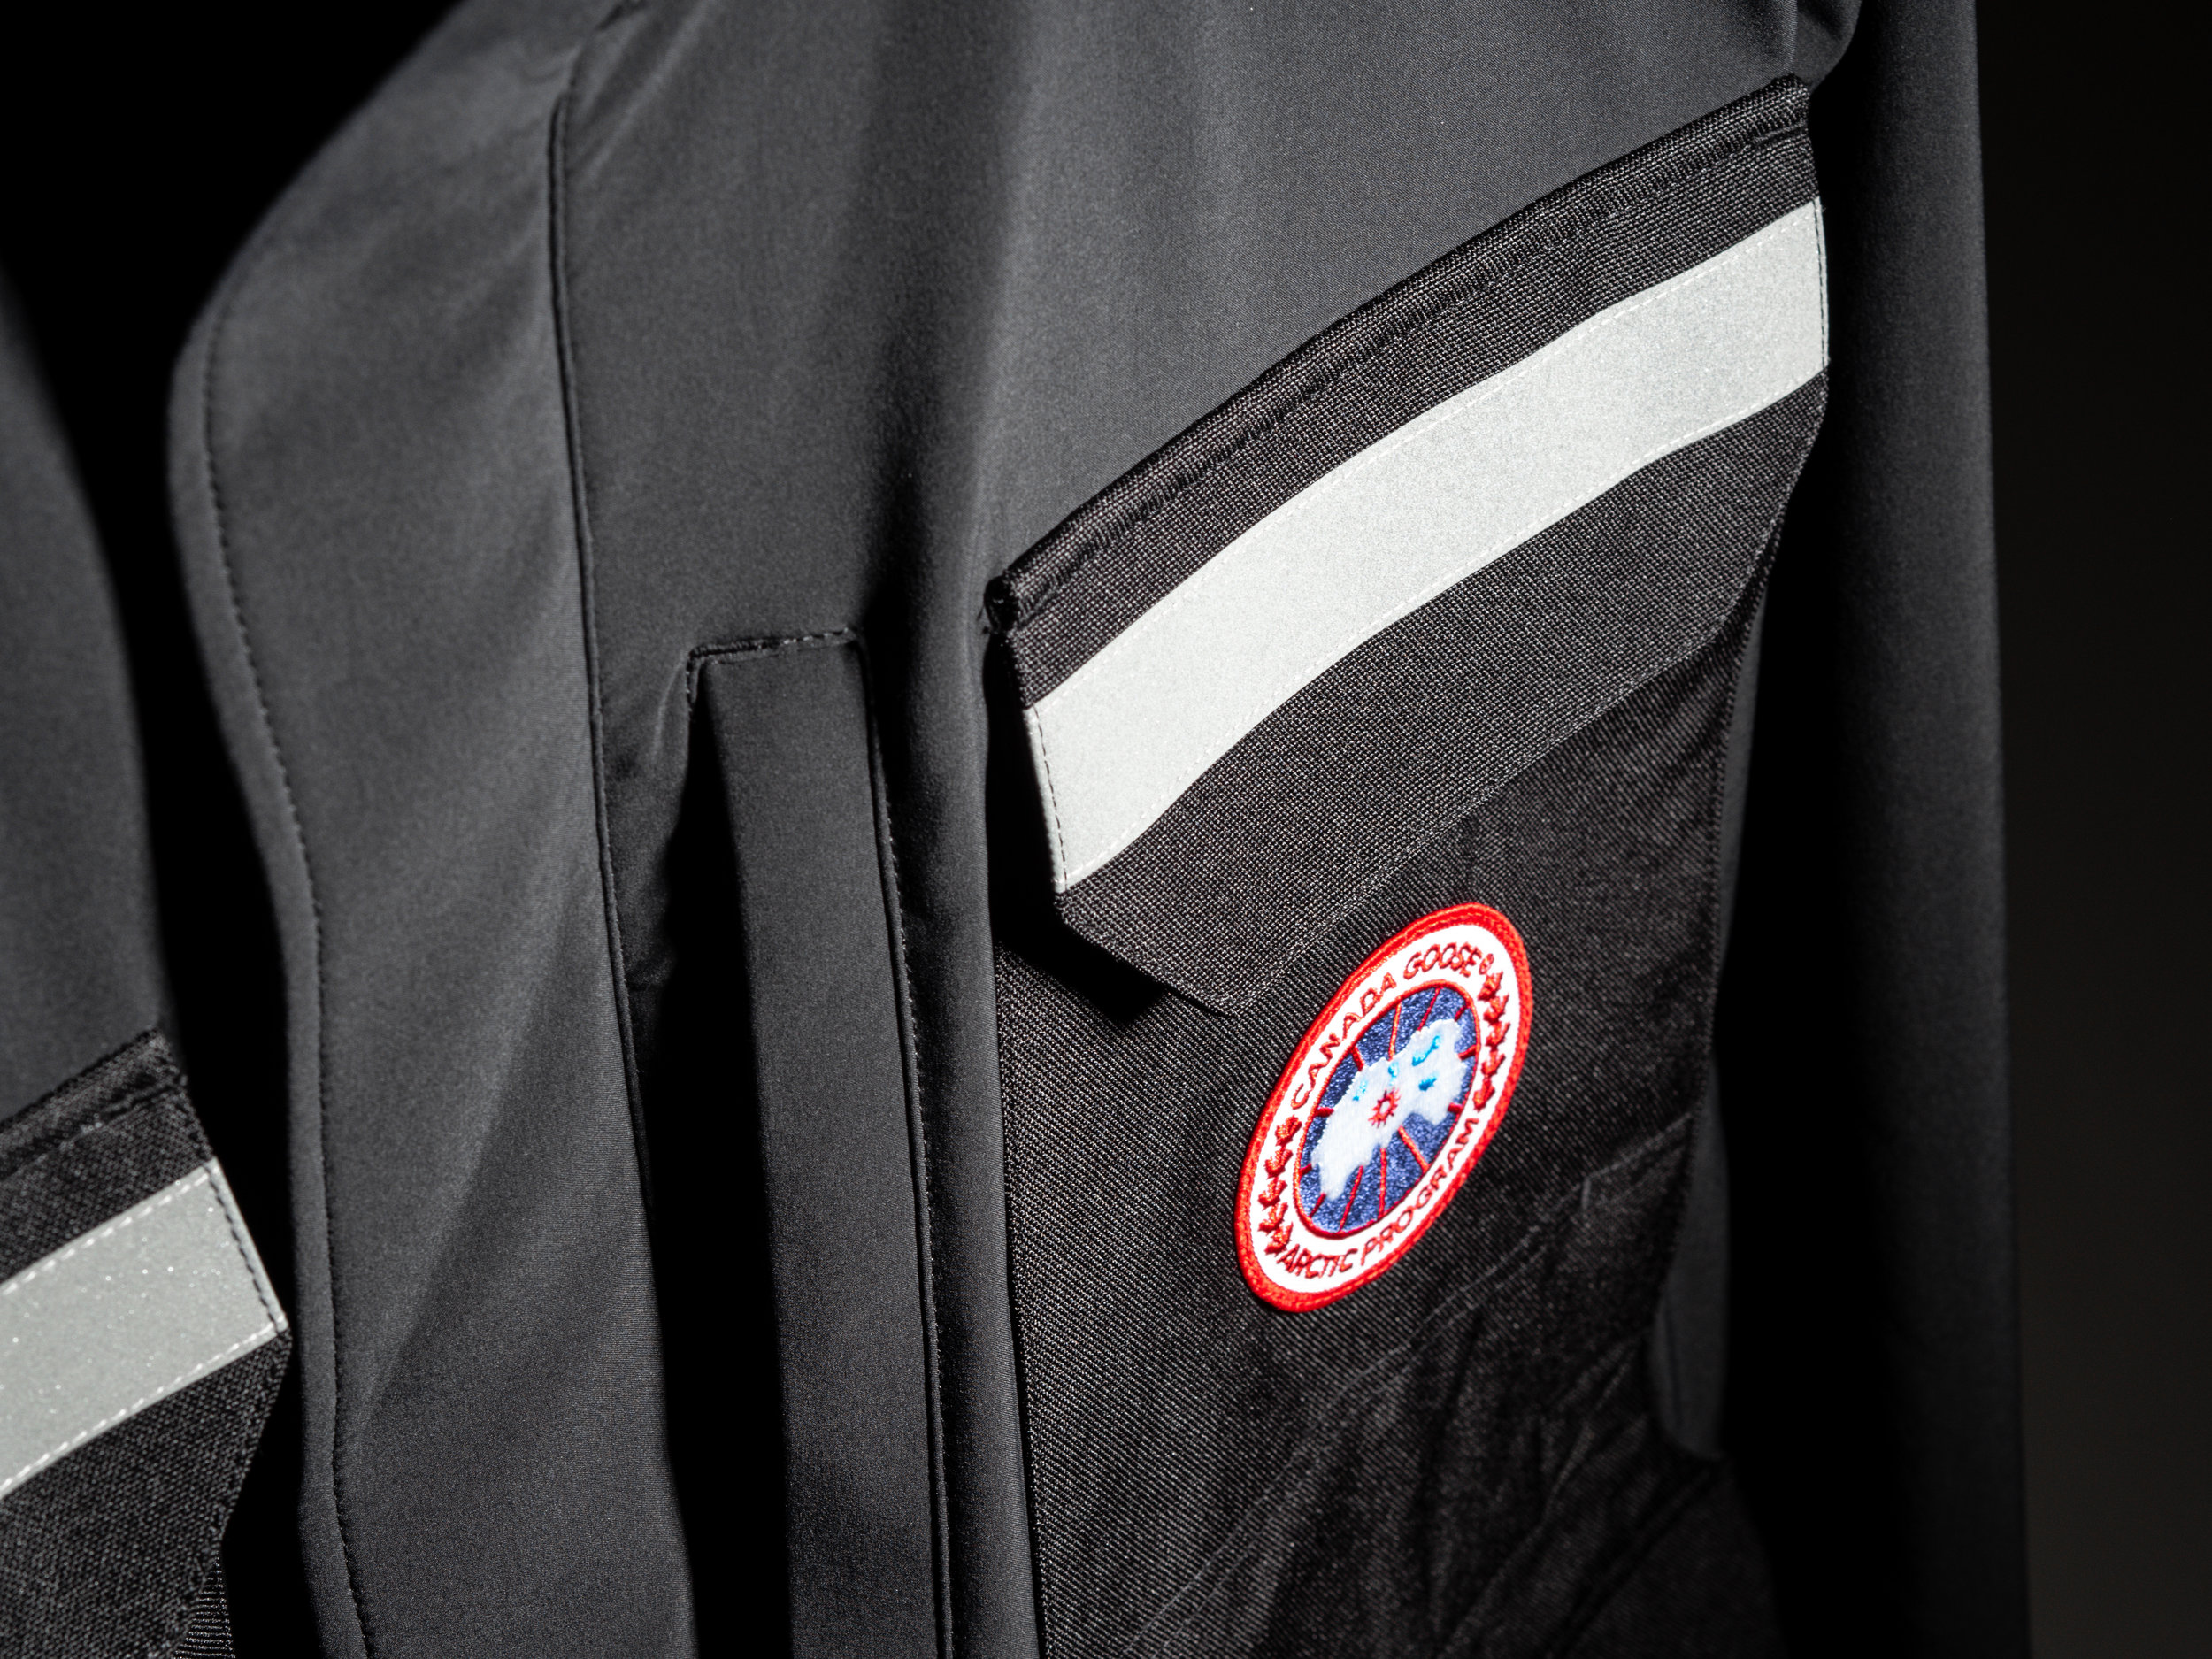 Canada Goose Photojournalist Jacket - Designed for the traveling photographer, with smart storage in mind, the Photojournalist Jacket features eight exterior pockets: five on the front, two on the lower back, and one on the right sleeve. The jacket is reinforced with Cordura around the pockets and shoulders to guard against abrasion, and features reflective taping on the hood, chest, and back for safety. The Photojournalist Jacket is finished with a two-way zipper covered by a Velcro placket, side-seam ventilation zippers, and a stowable, waterproof hood.